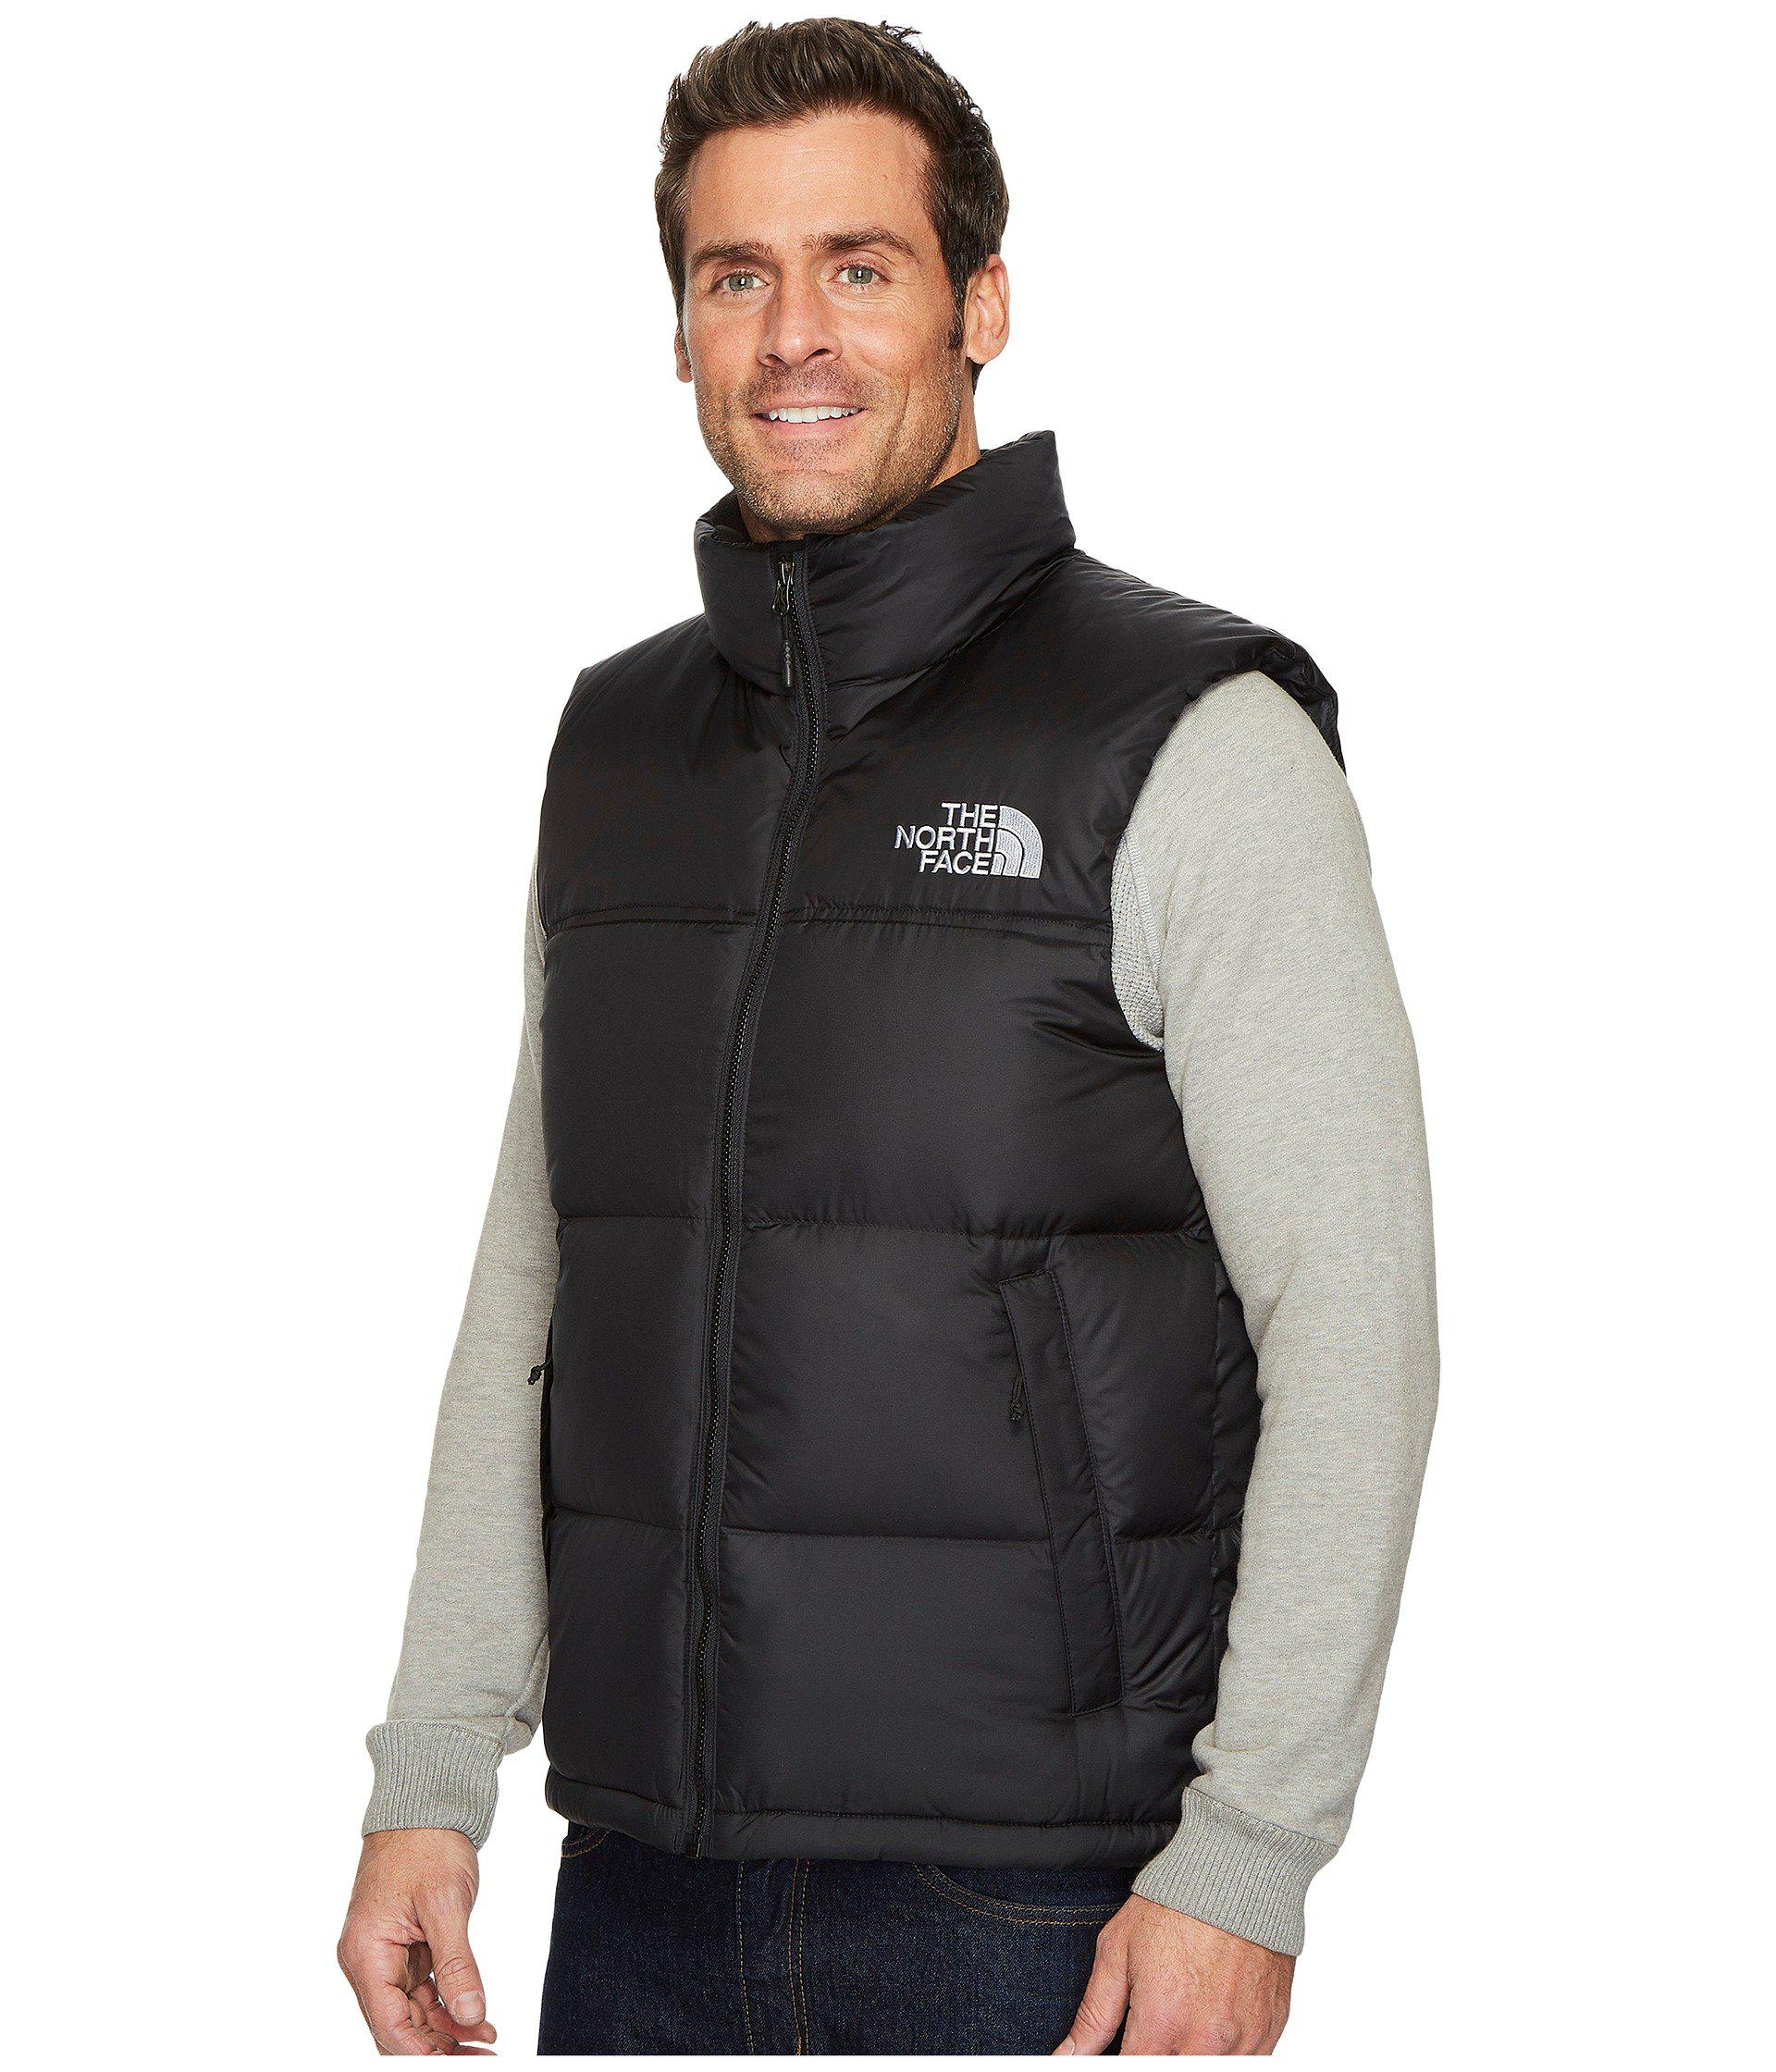 ... authentic lyst the north face novelty nuptse vest in black for men  aade4 e341f 114c7be0a